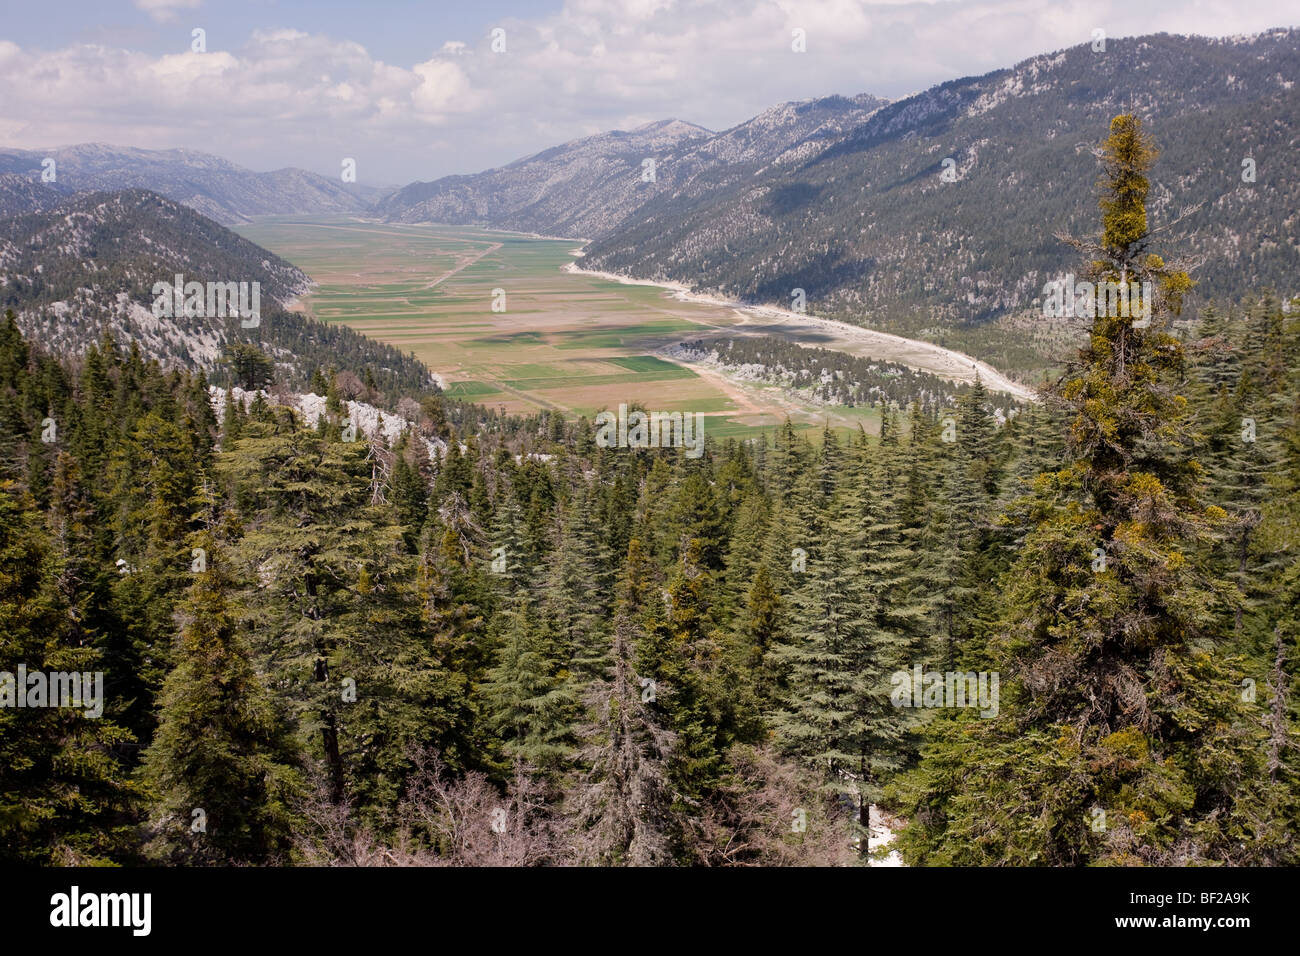 Drained former lake, Lake Golovasi, surrounded by fir and cedar forest; in the Taurus Mountains, south Turkey. - Stock Image